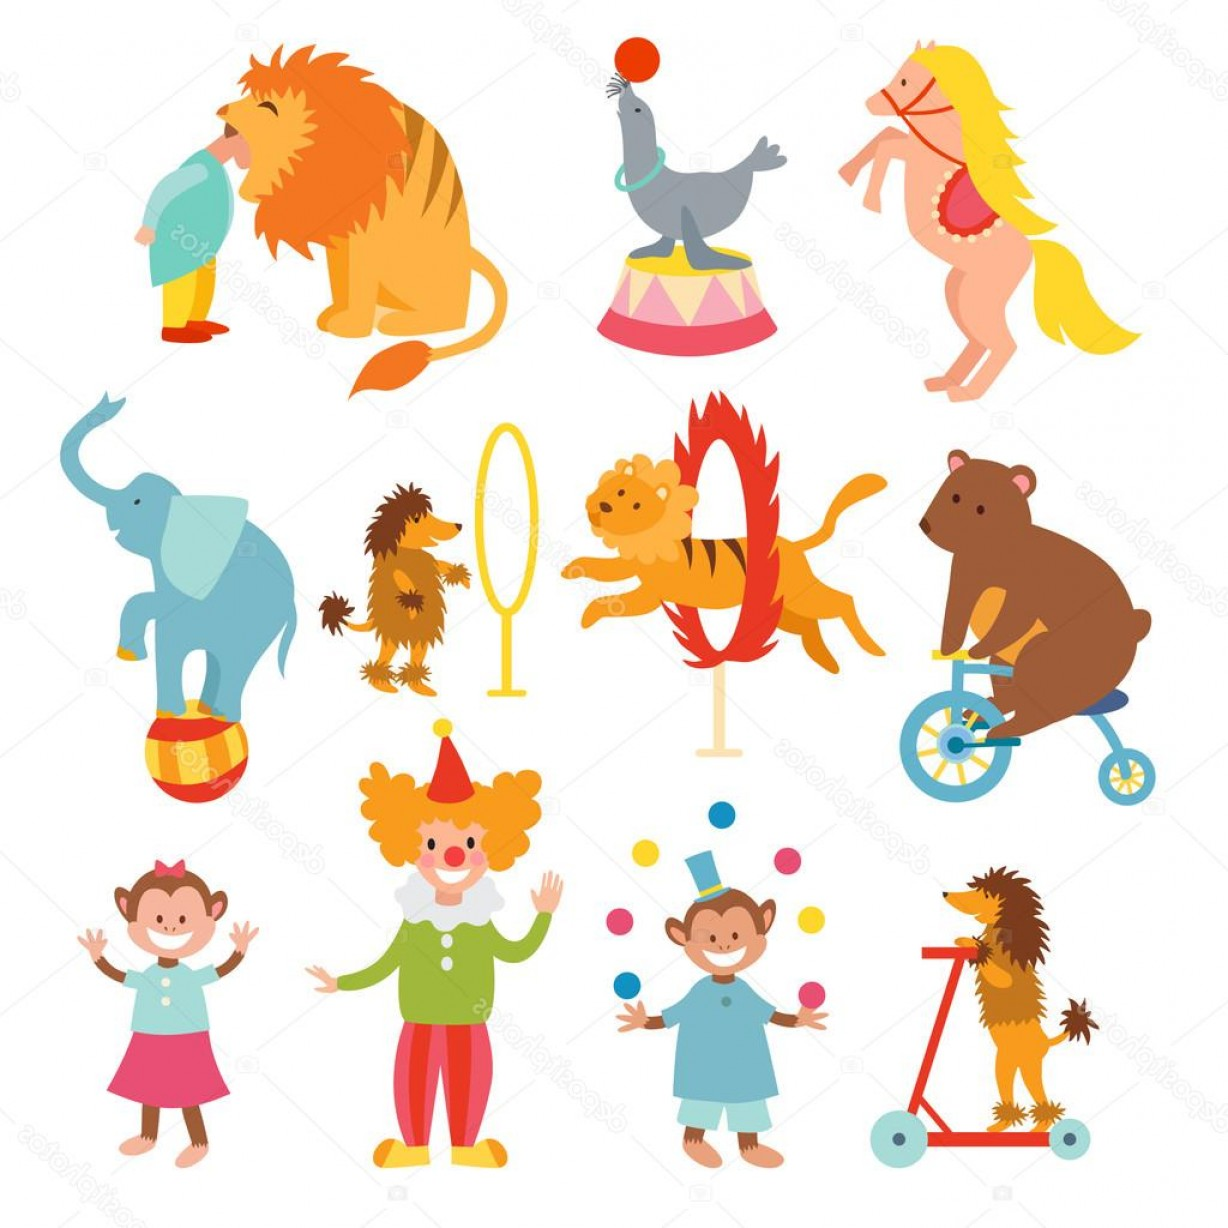 Circus Animals Vector Graphic: Stock Illustration Cute Circus Animals And Funny